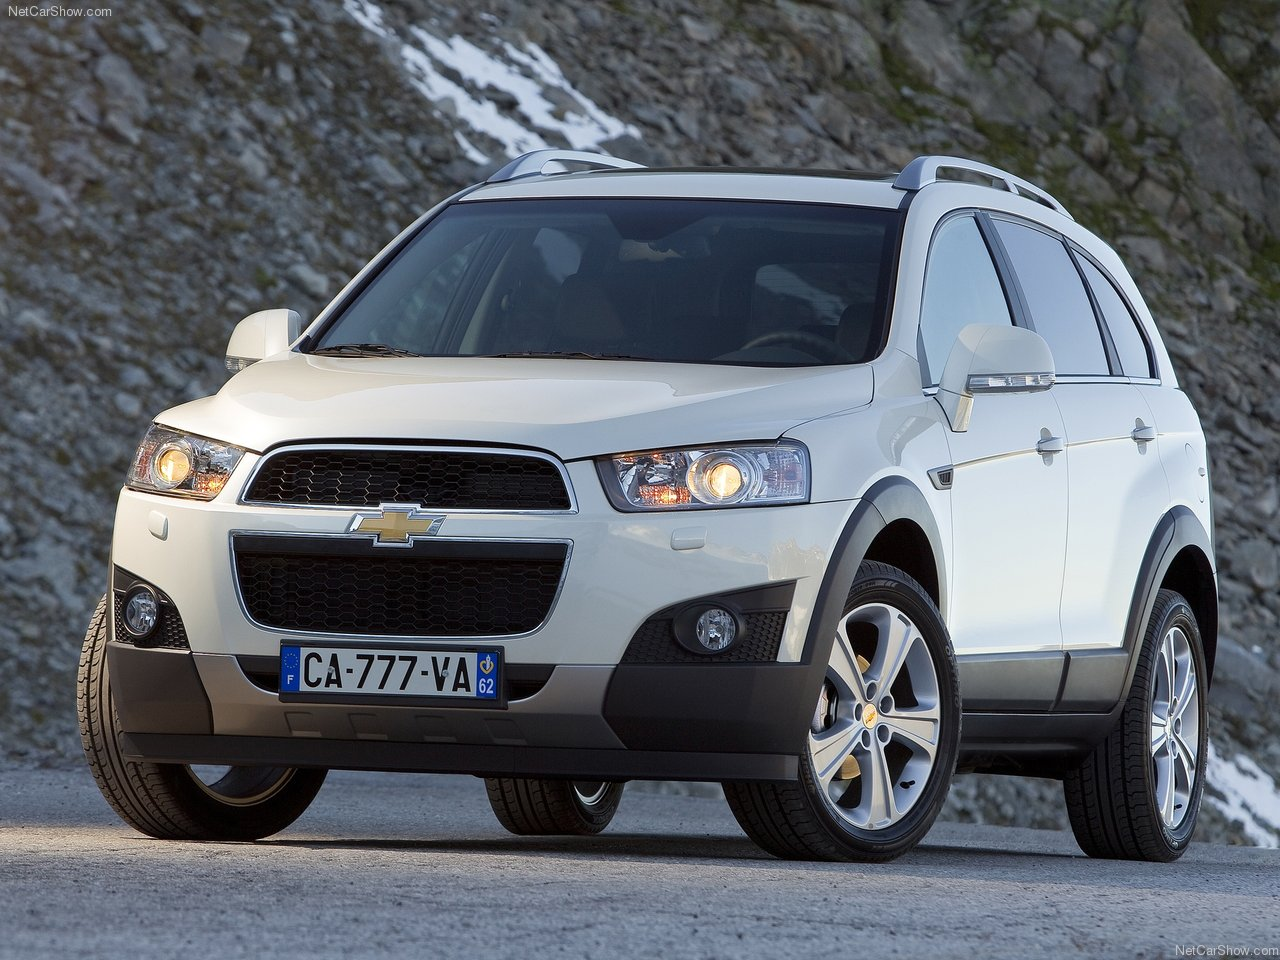 Chevrolet-Captiva_2012_1280x960_wallpape